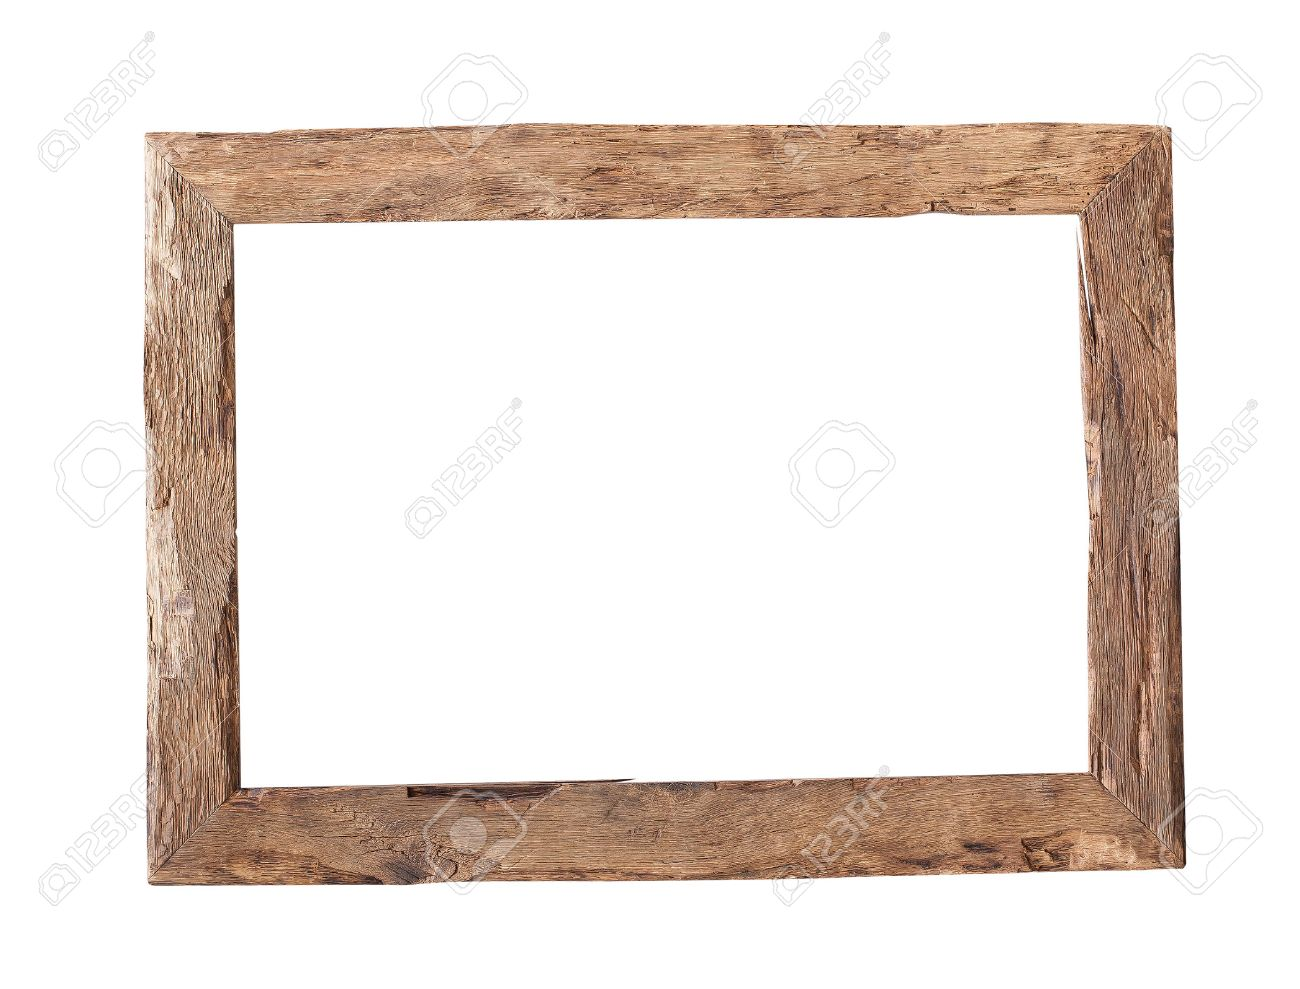 Attirant Stock Photo   Wooden Frame. Rustic Wood Frame Isolated On The White  Background With Clipping Path